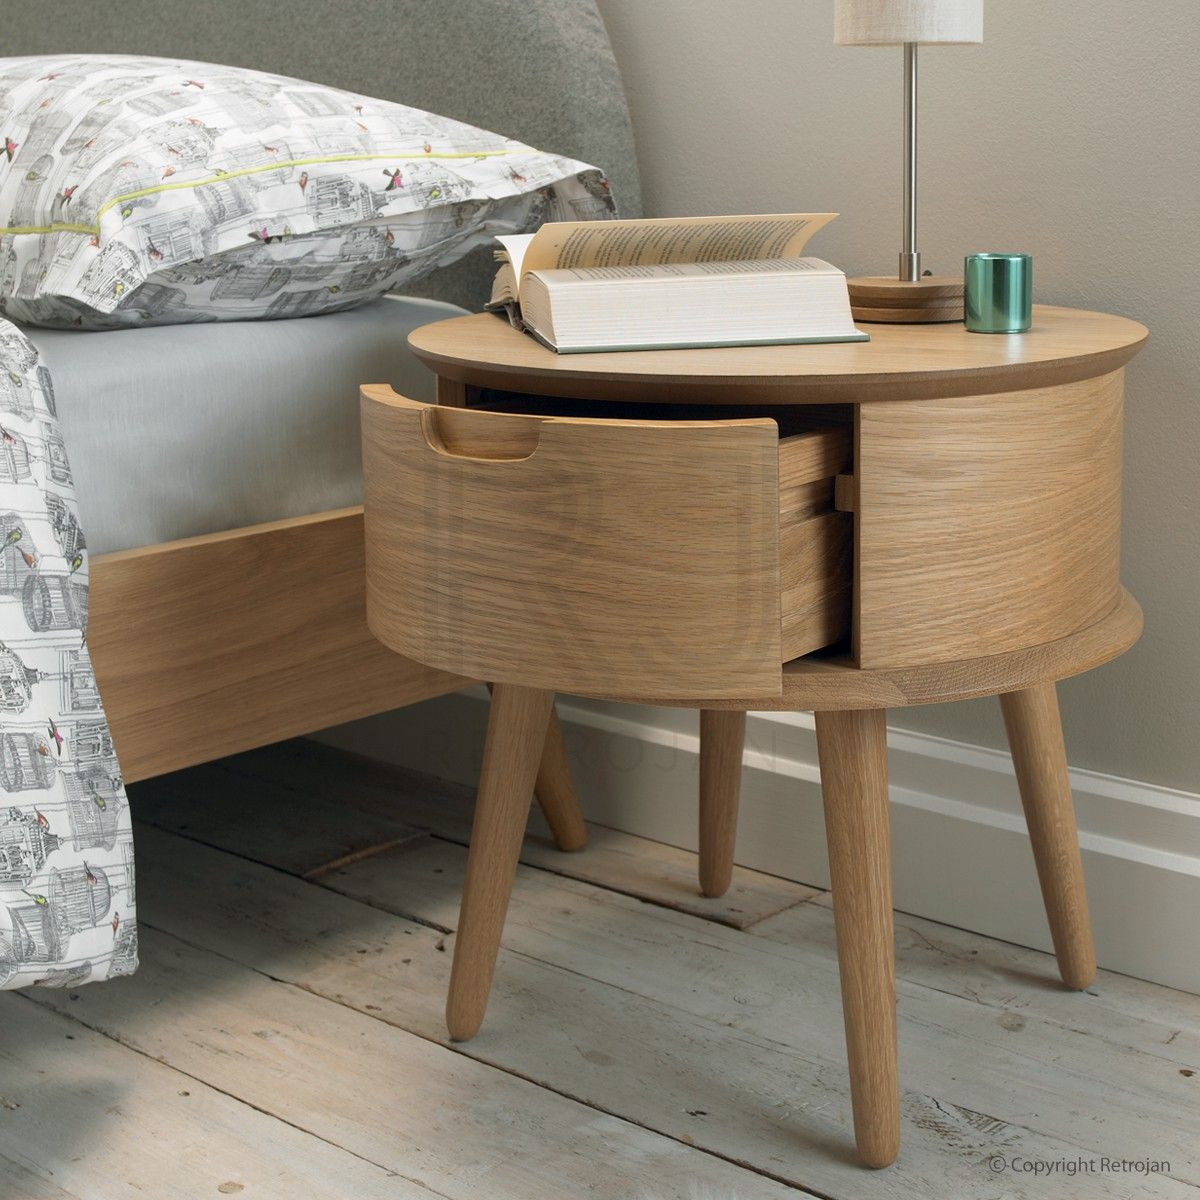 The 5 Step Nightstand Styling Formula That Will Make You